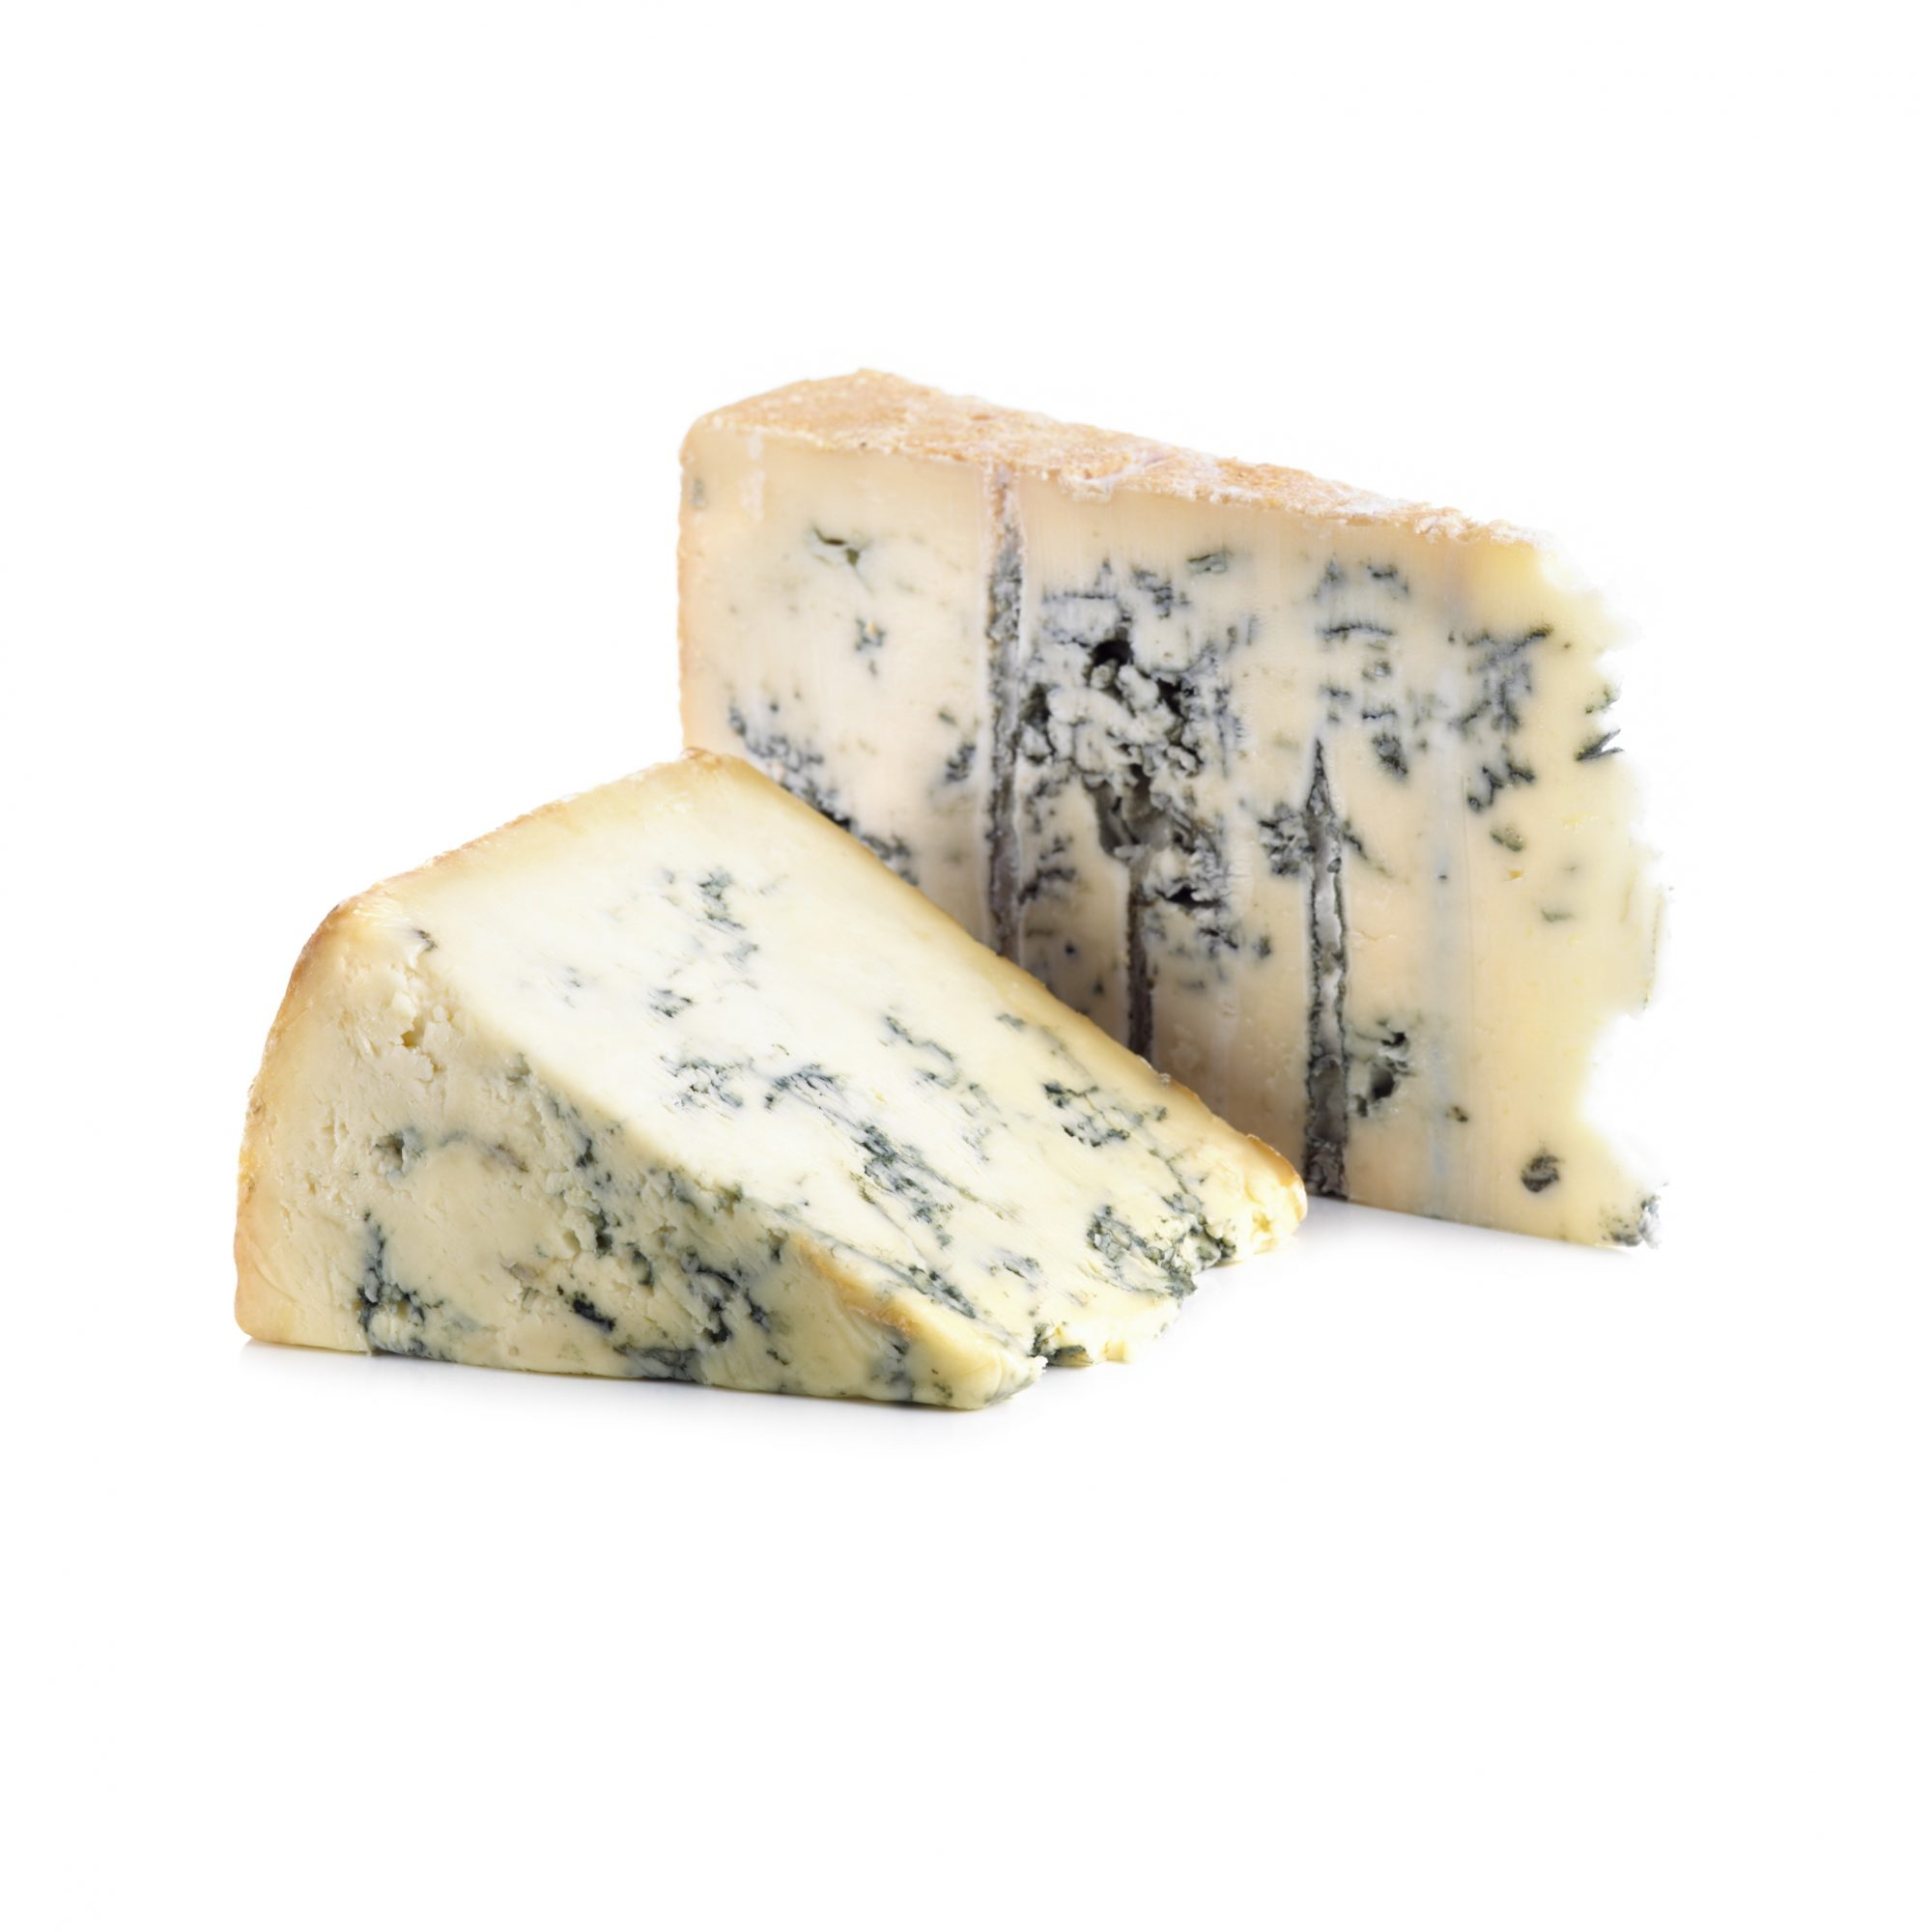 What Makes Blue Cheese Blue?